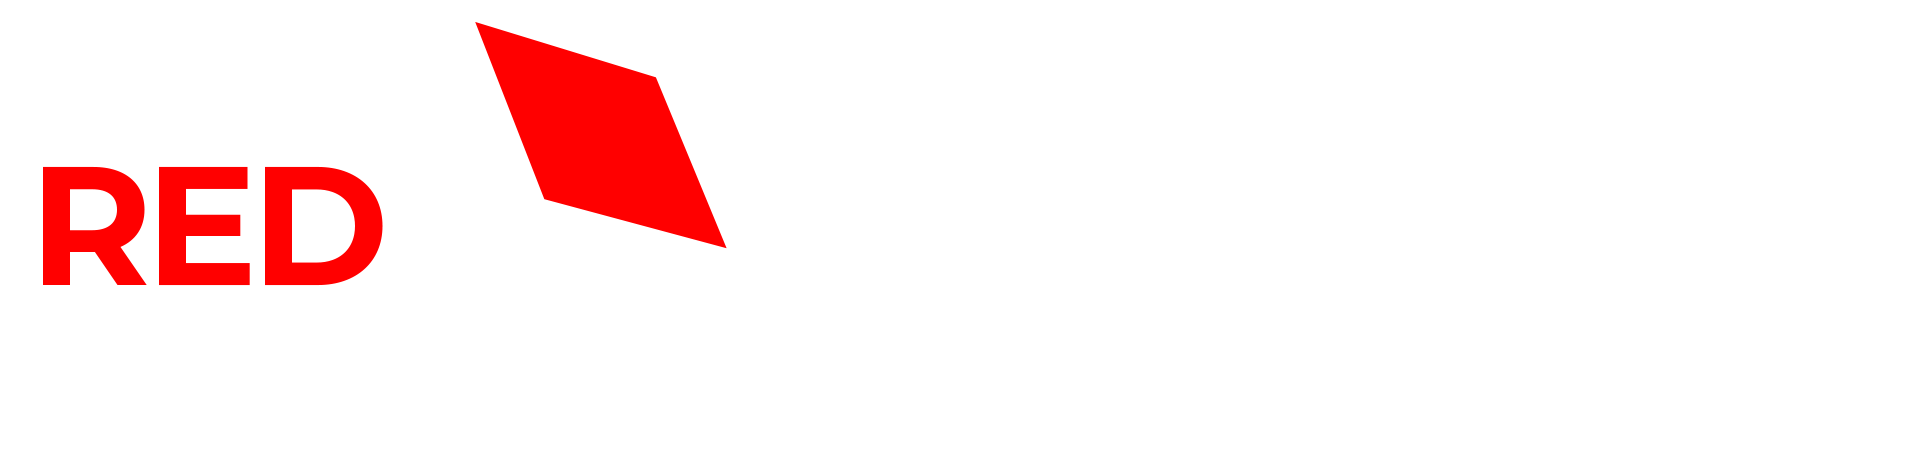 Red Launch Pad